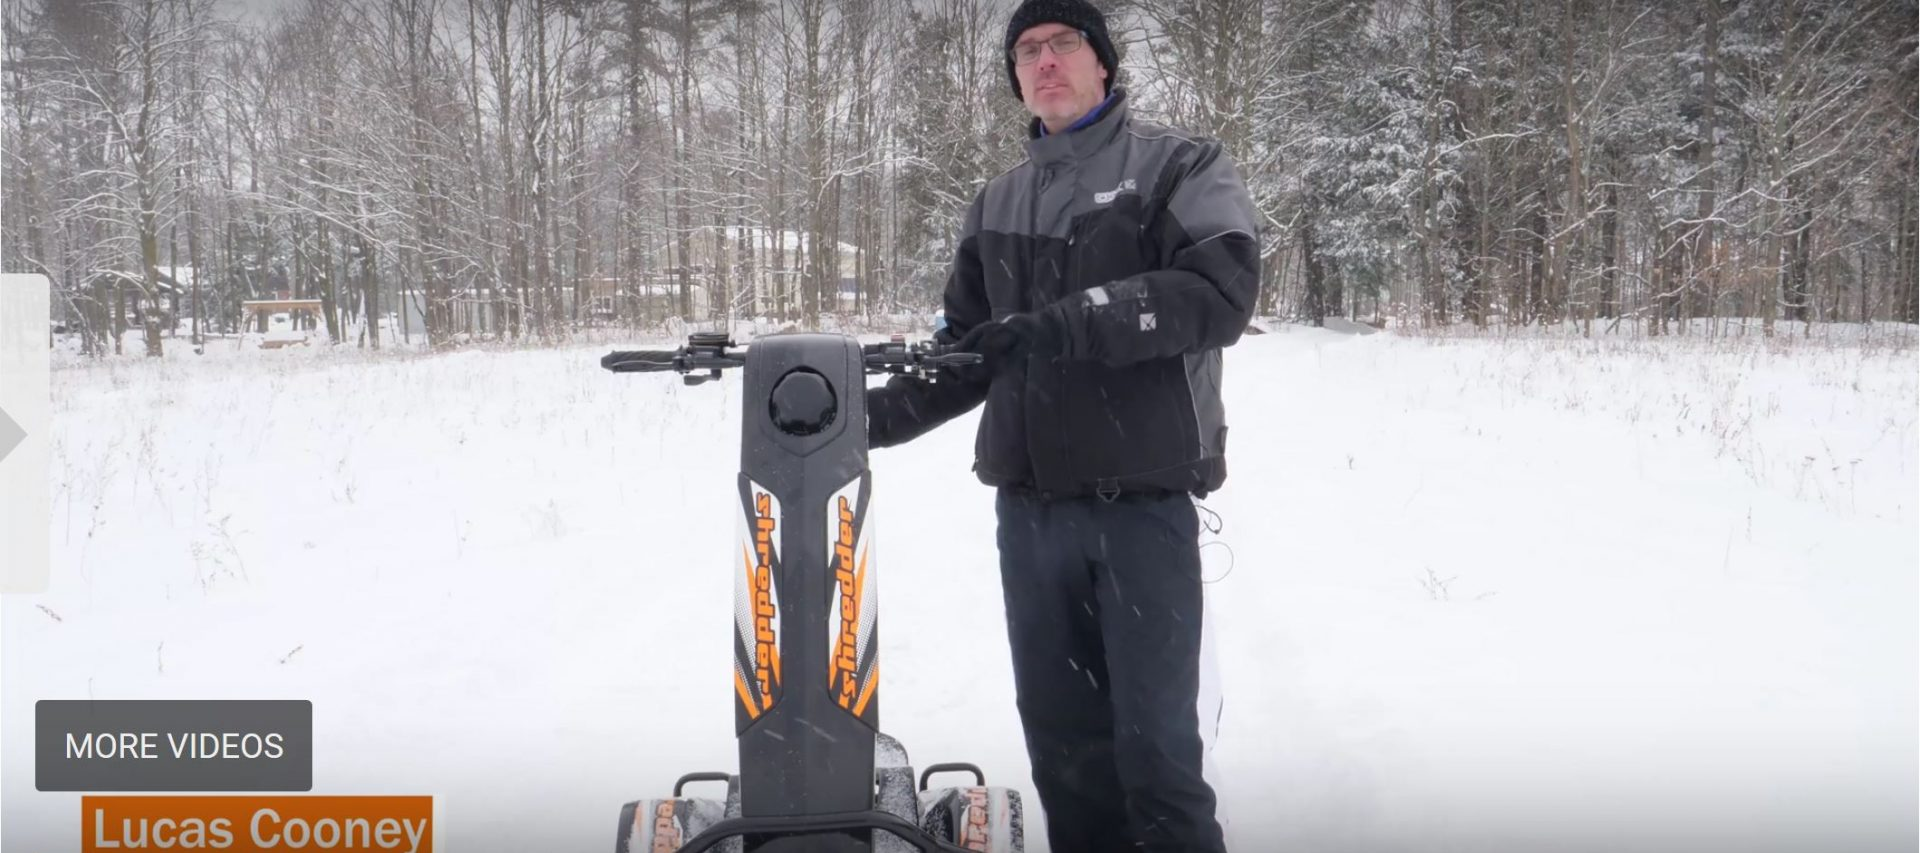 DTV SHREDDER REVIEWED ON ATV.COM